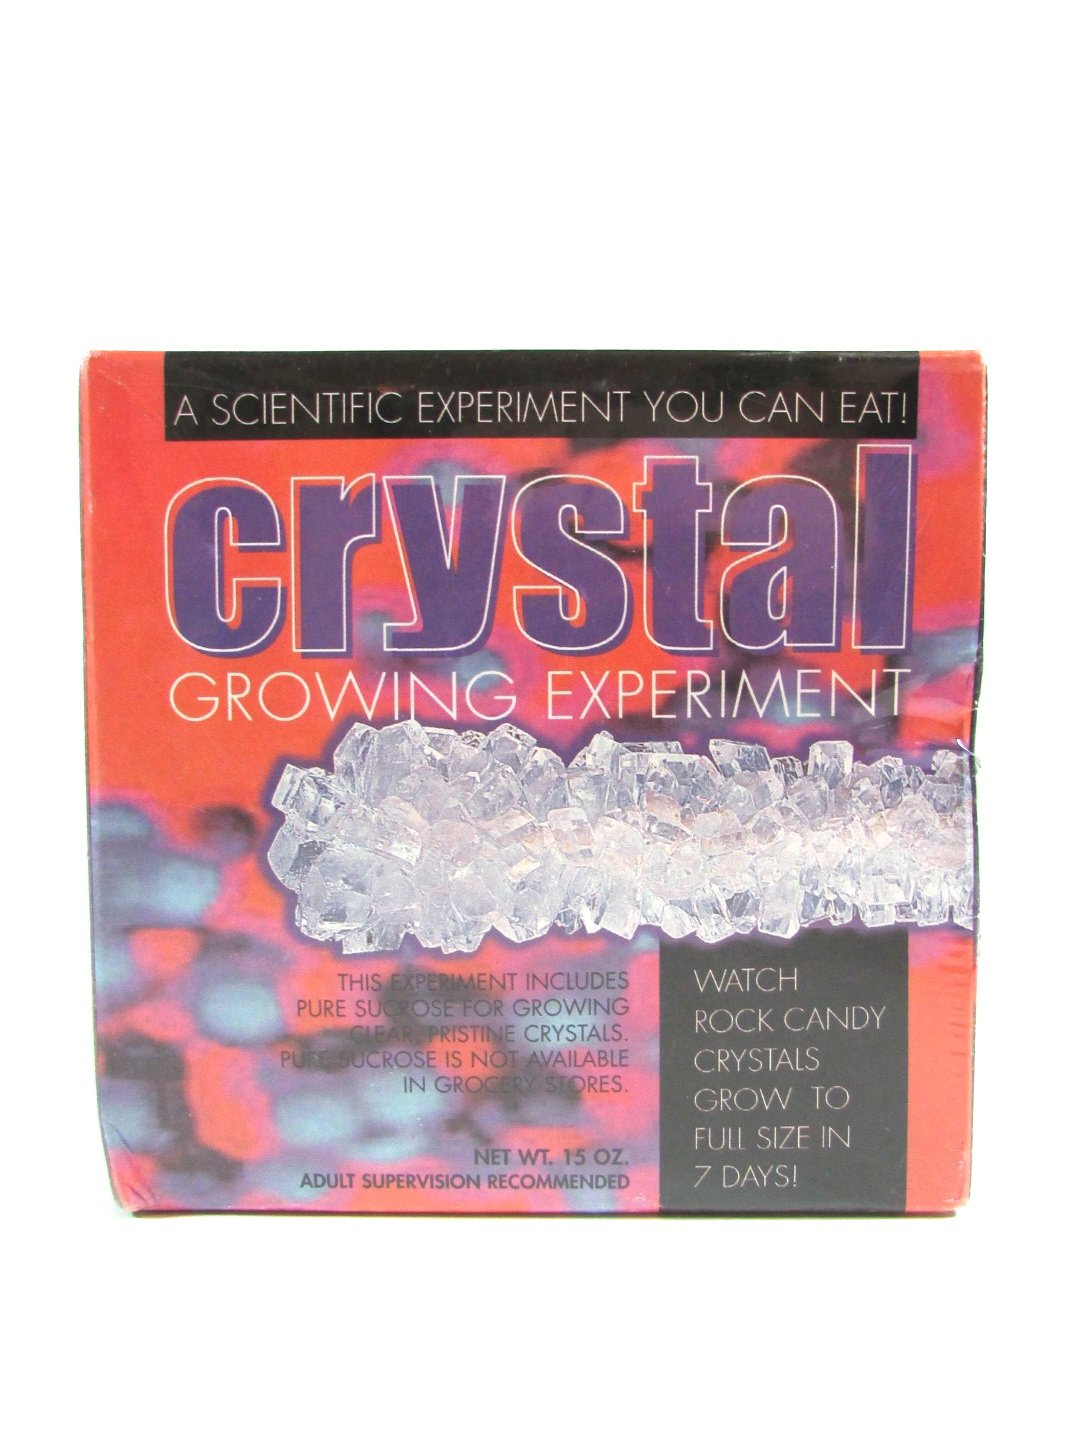 Rock Candy Crystal Growing Sugar Kit Oakland Reservation Mall Pure Sucrose